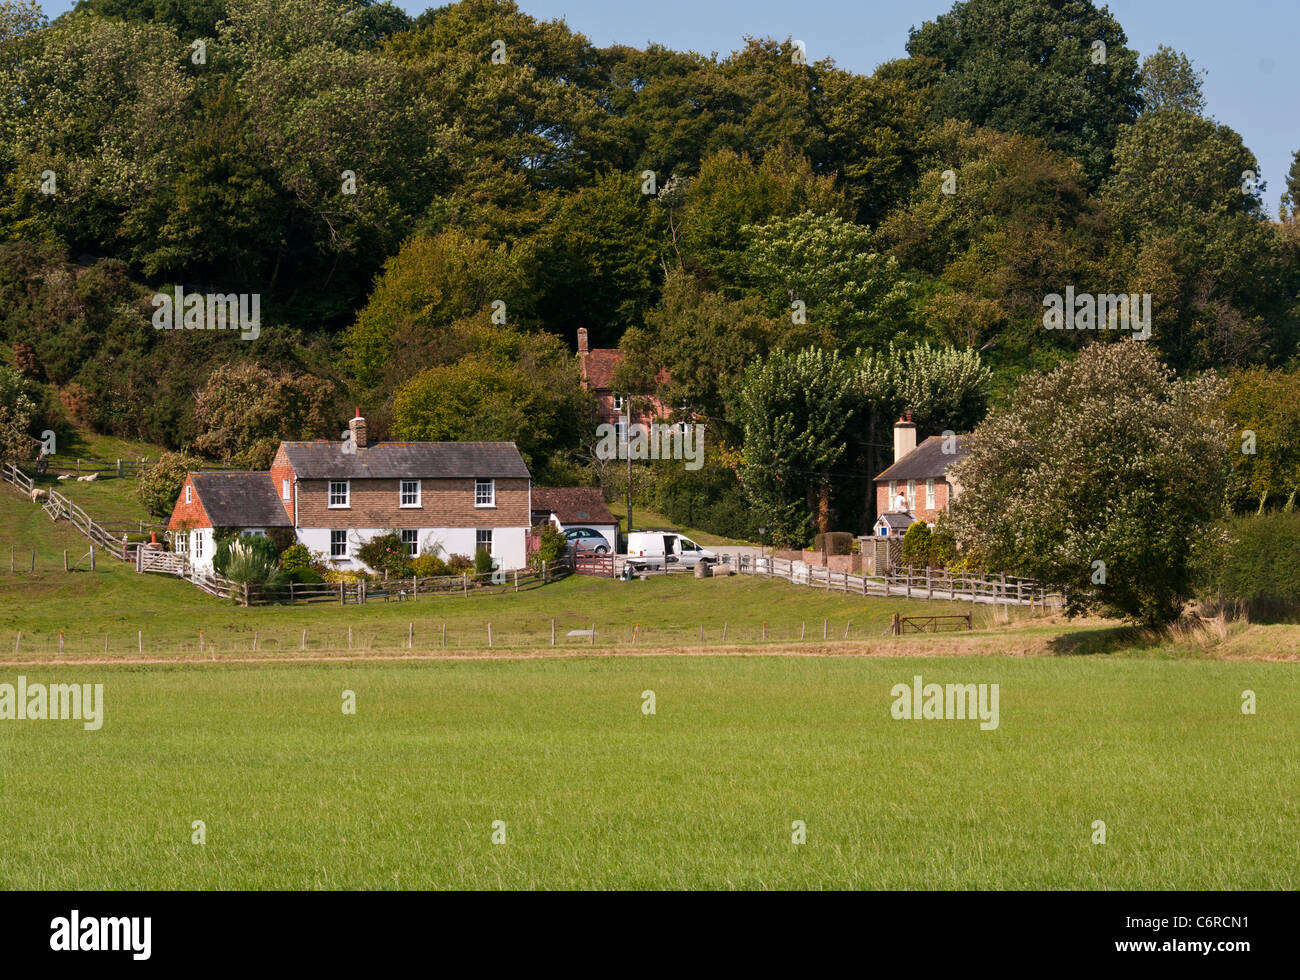 Large Houses In The East Sussex Countryside Near Playden UK - Stock Image